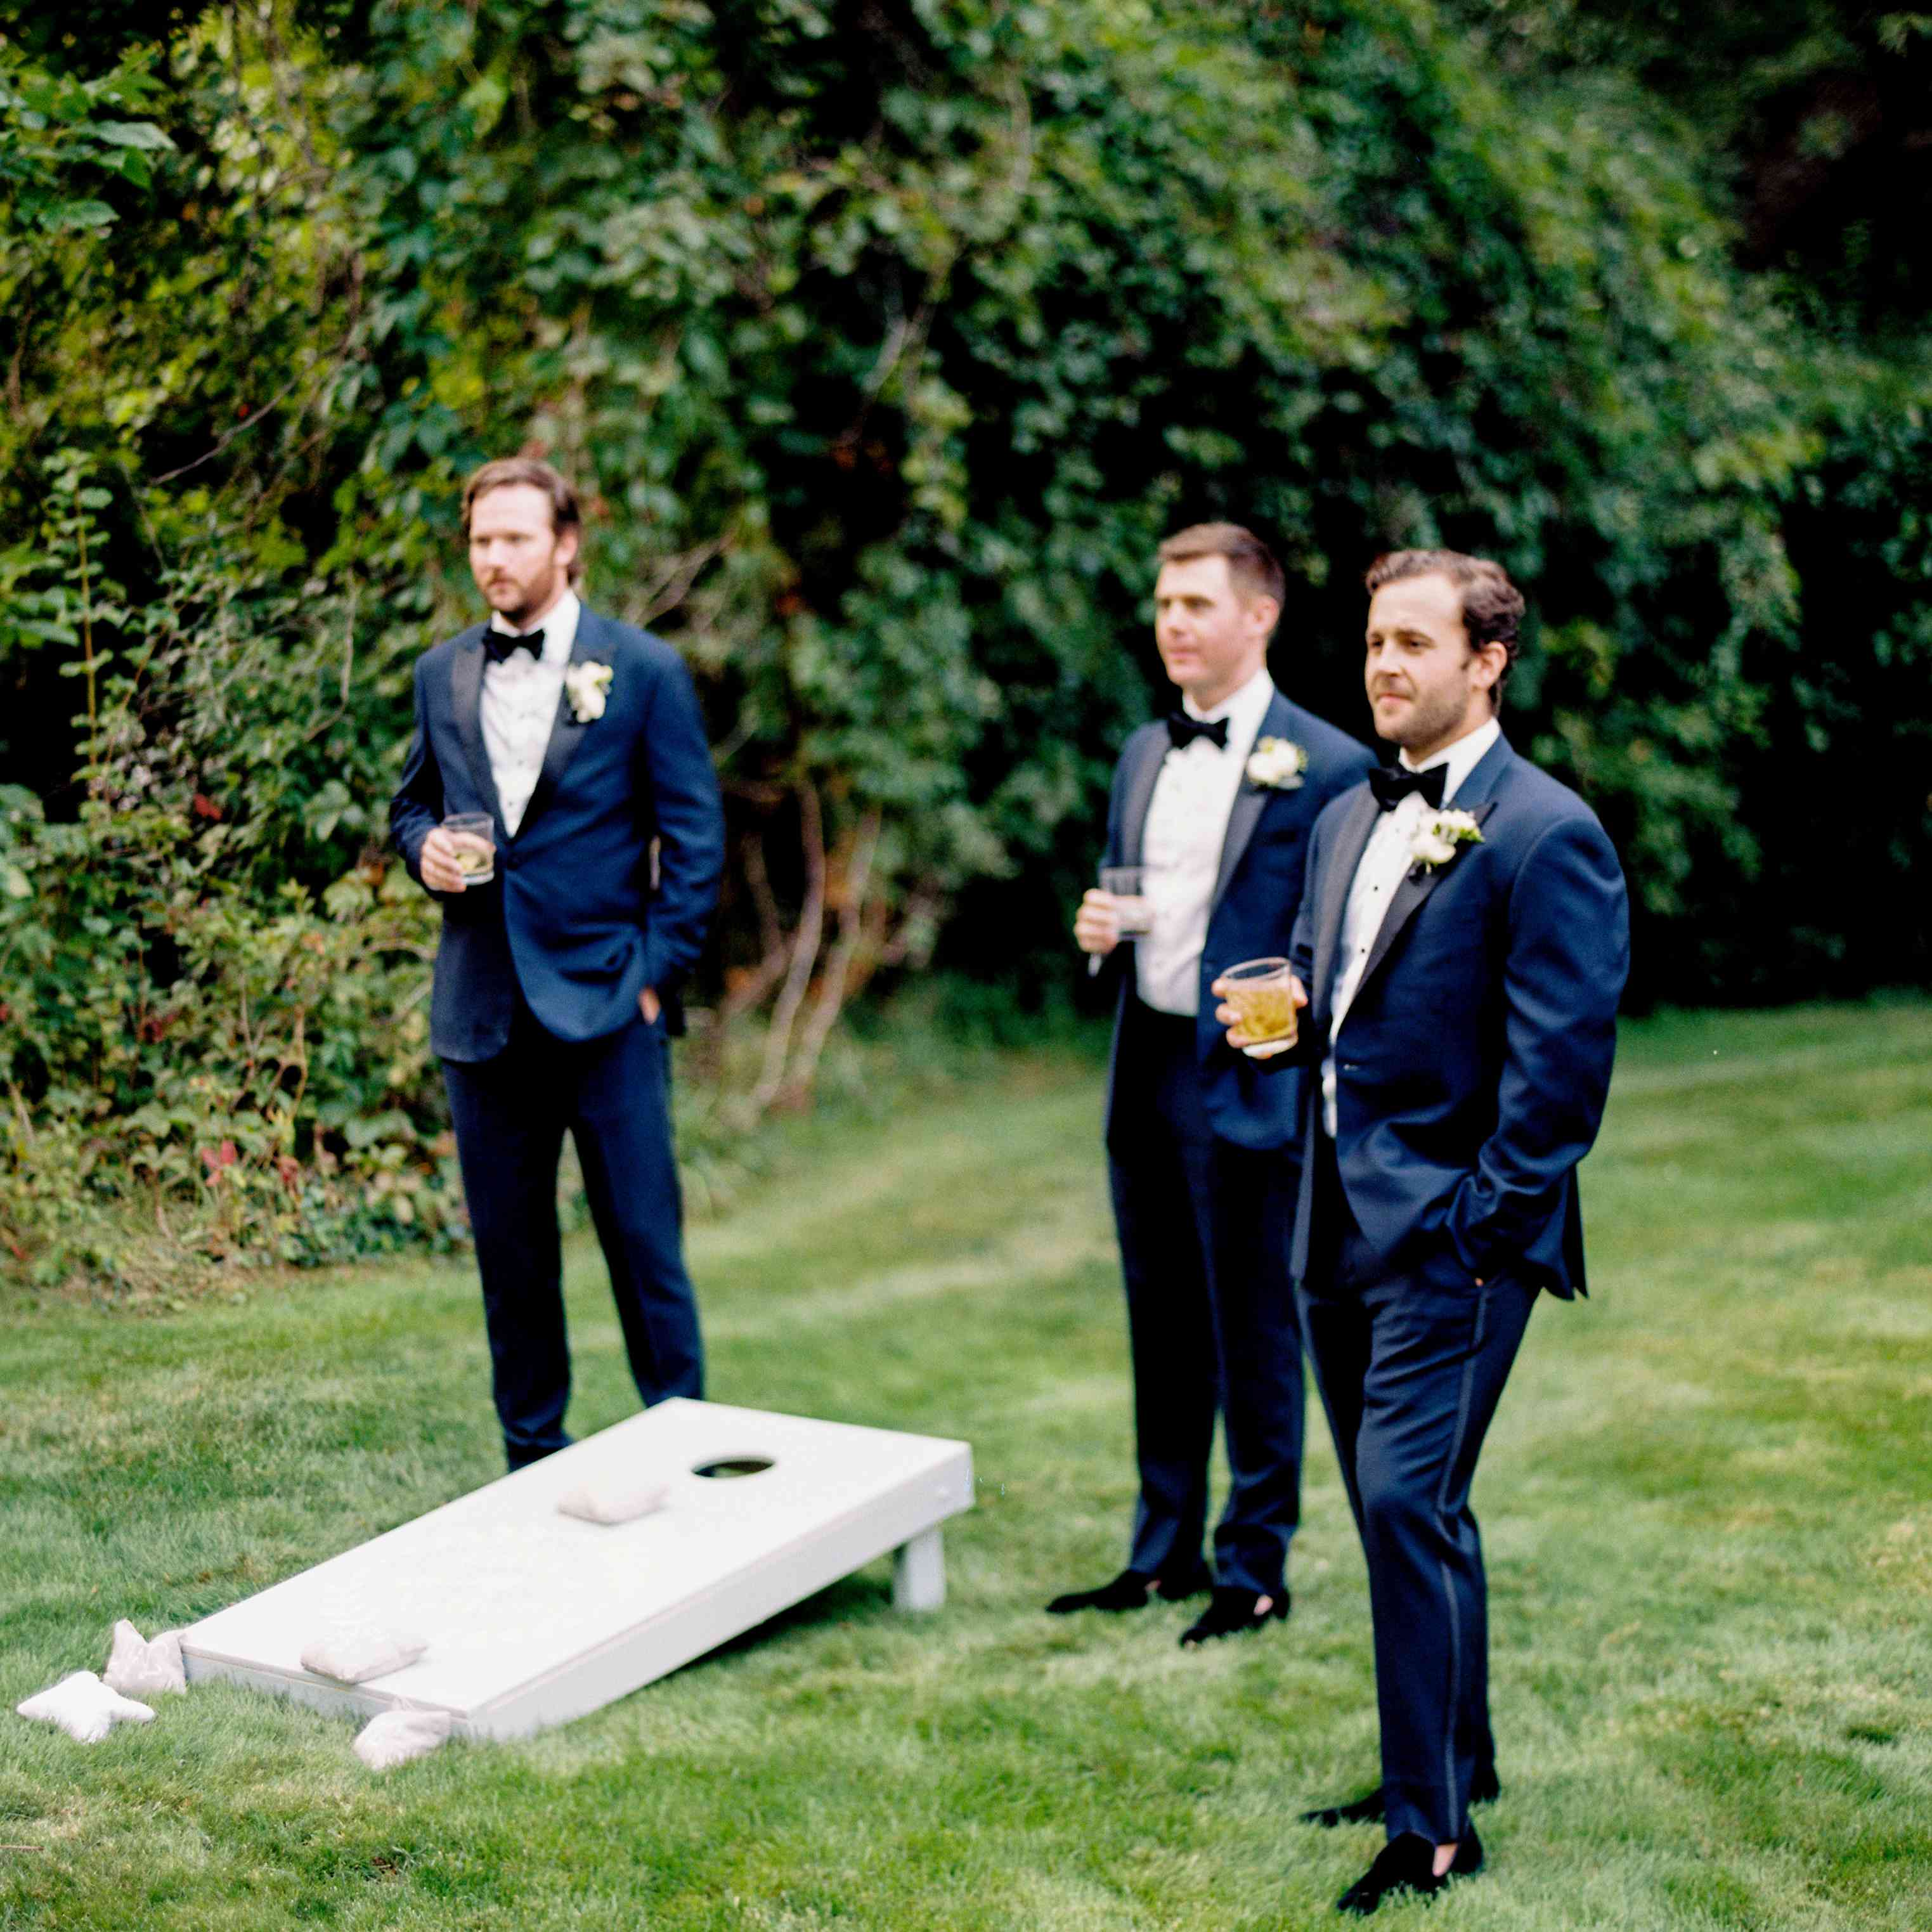 groomsman navy suits playing reception games